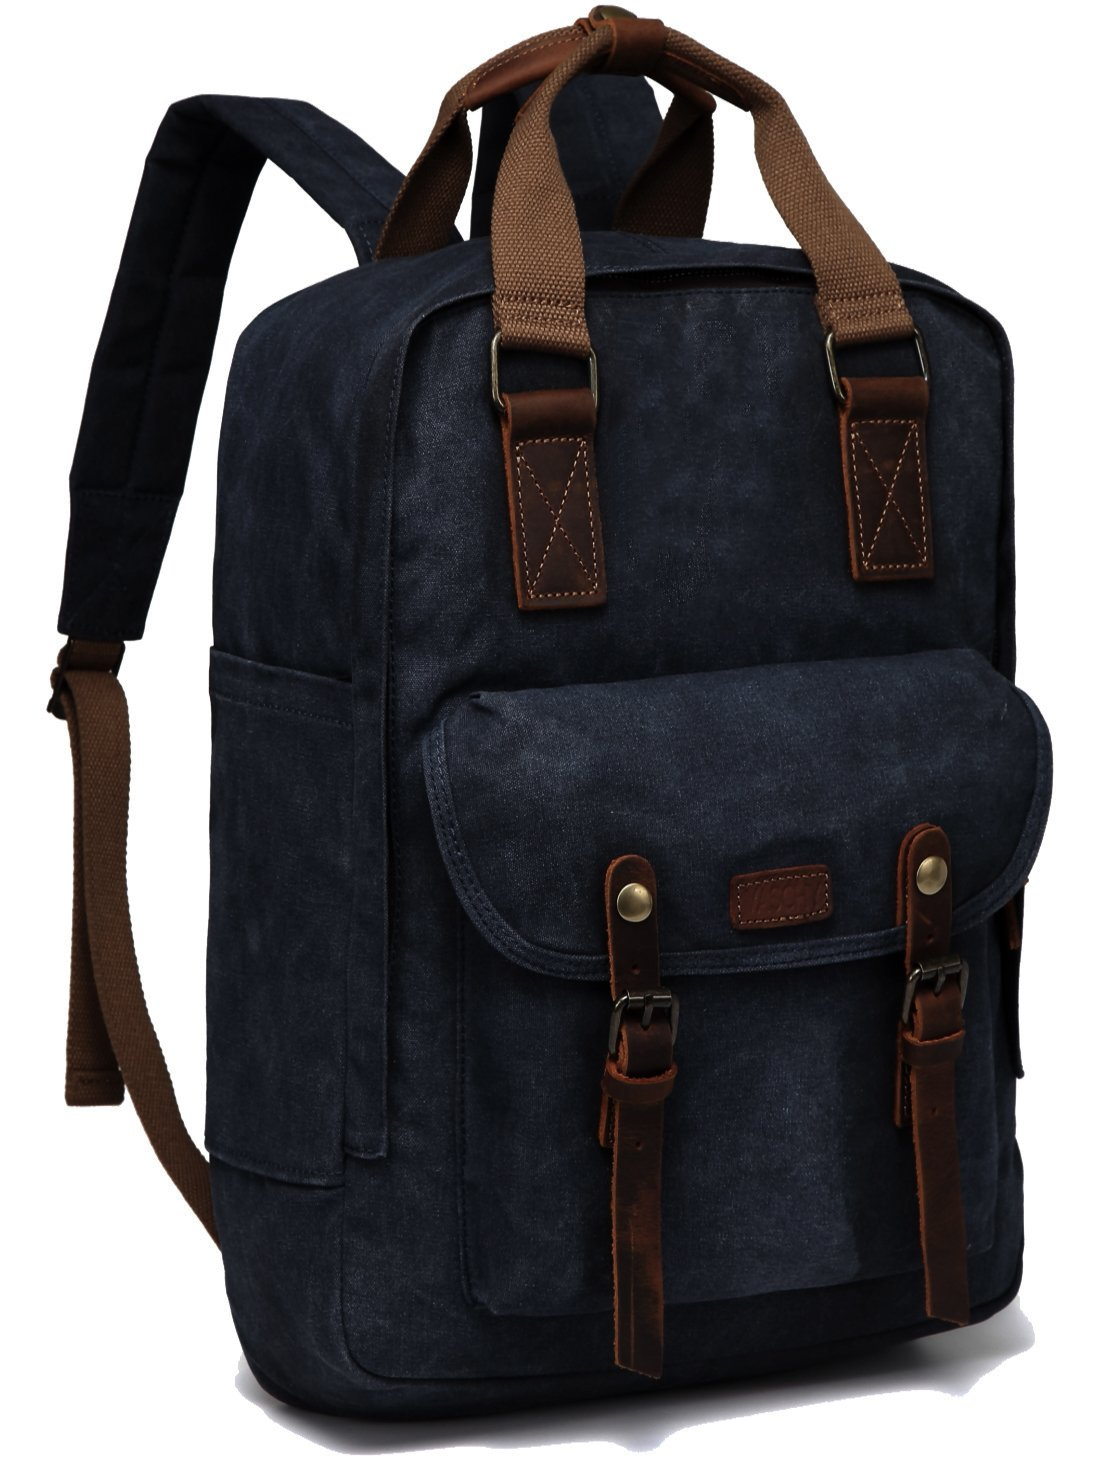 Canvas Laptop Backpack,VASCHY Vintage Waxed Canvas Anti-Theft Backpack for Men Fits 15.6inch Laptop Navy